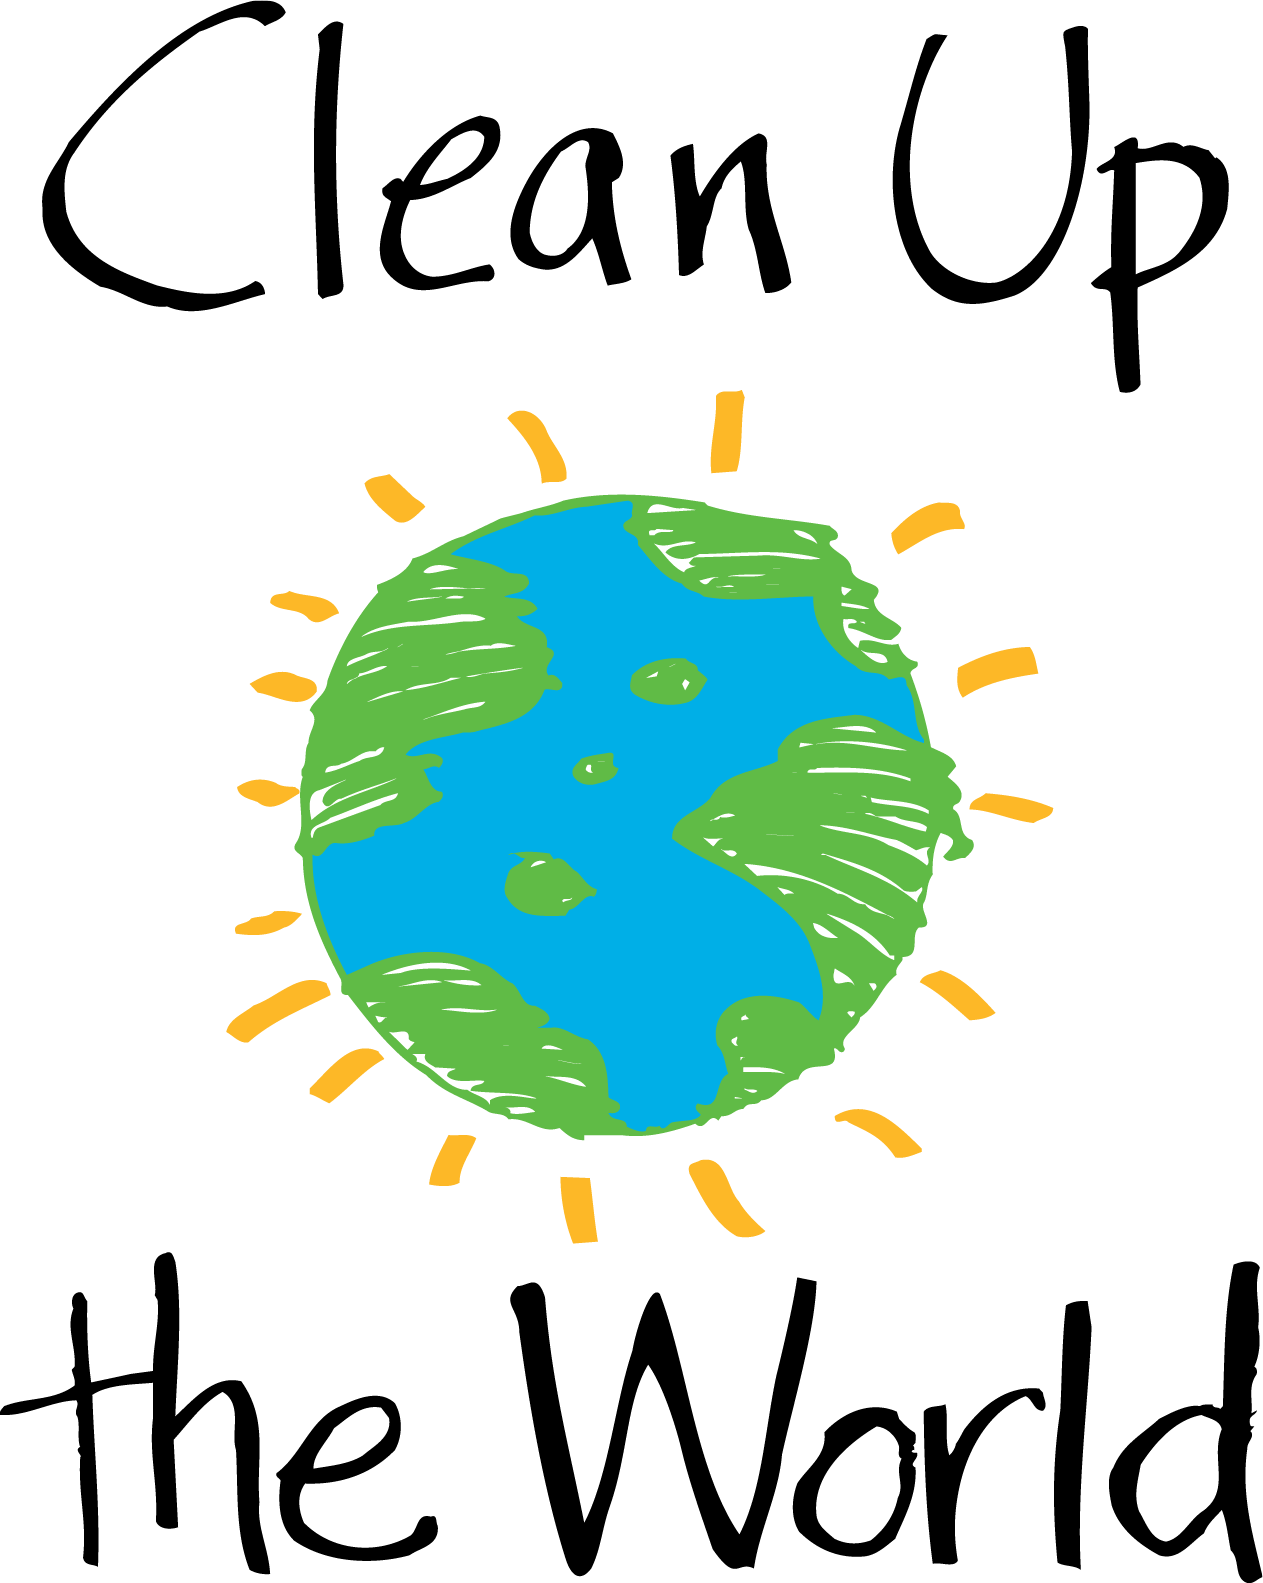 Clean Up The World - Local environmental action making a world of  difference.